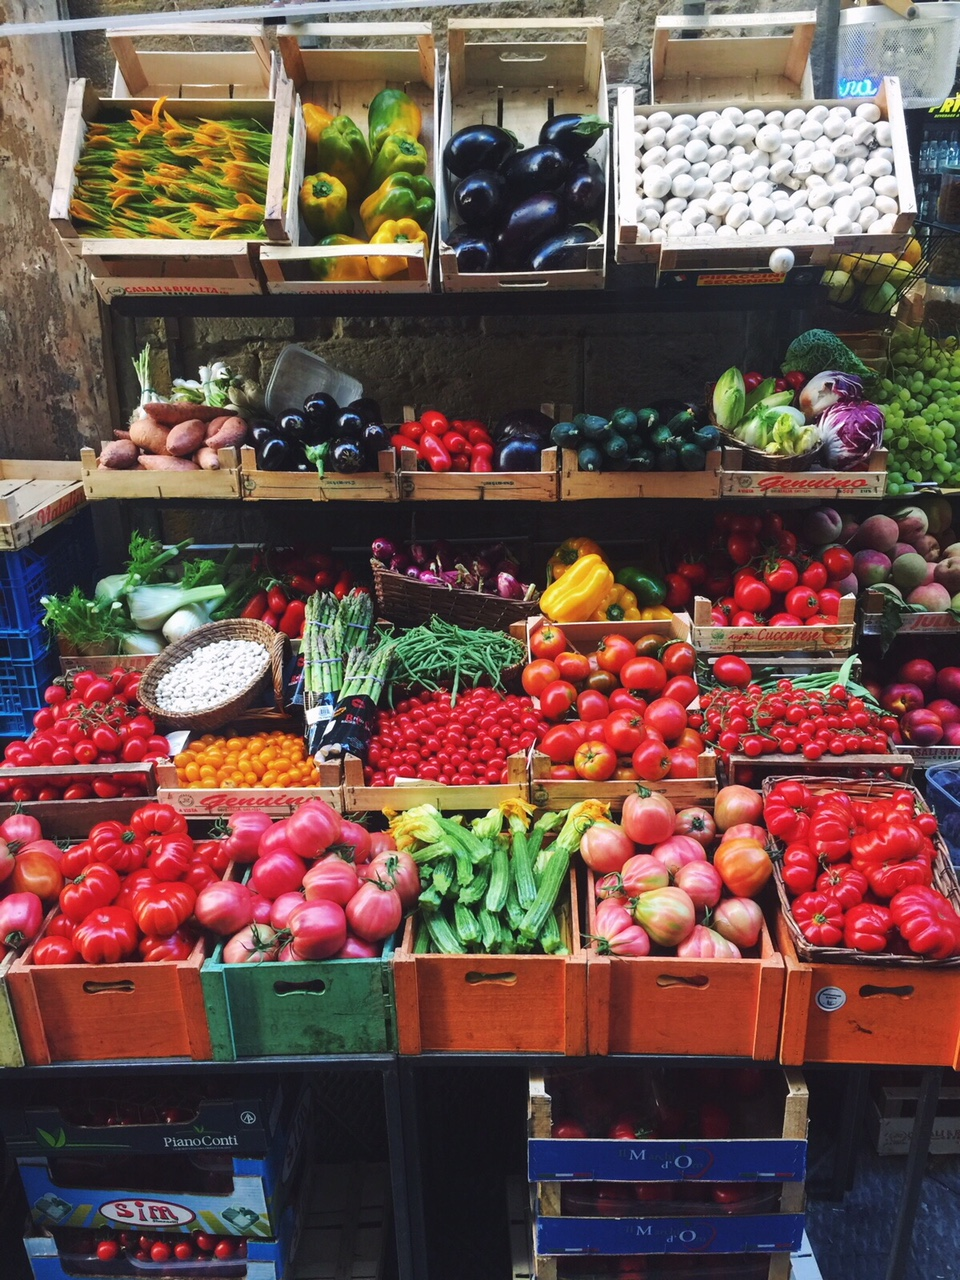 Beautiful local, organic veggies at a small market in Rome, Italy.